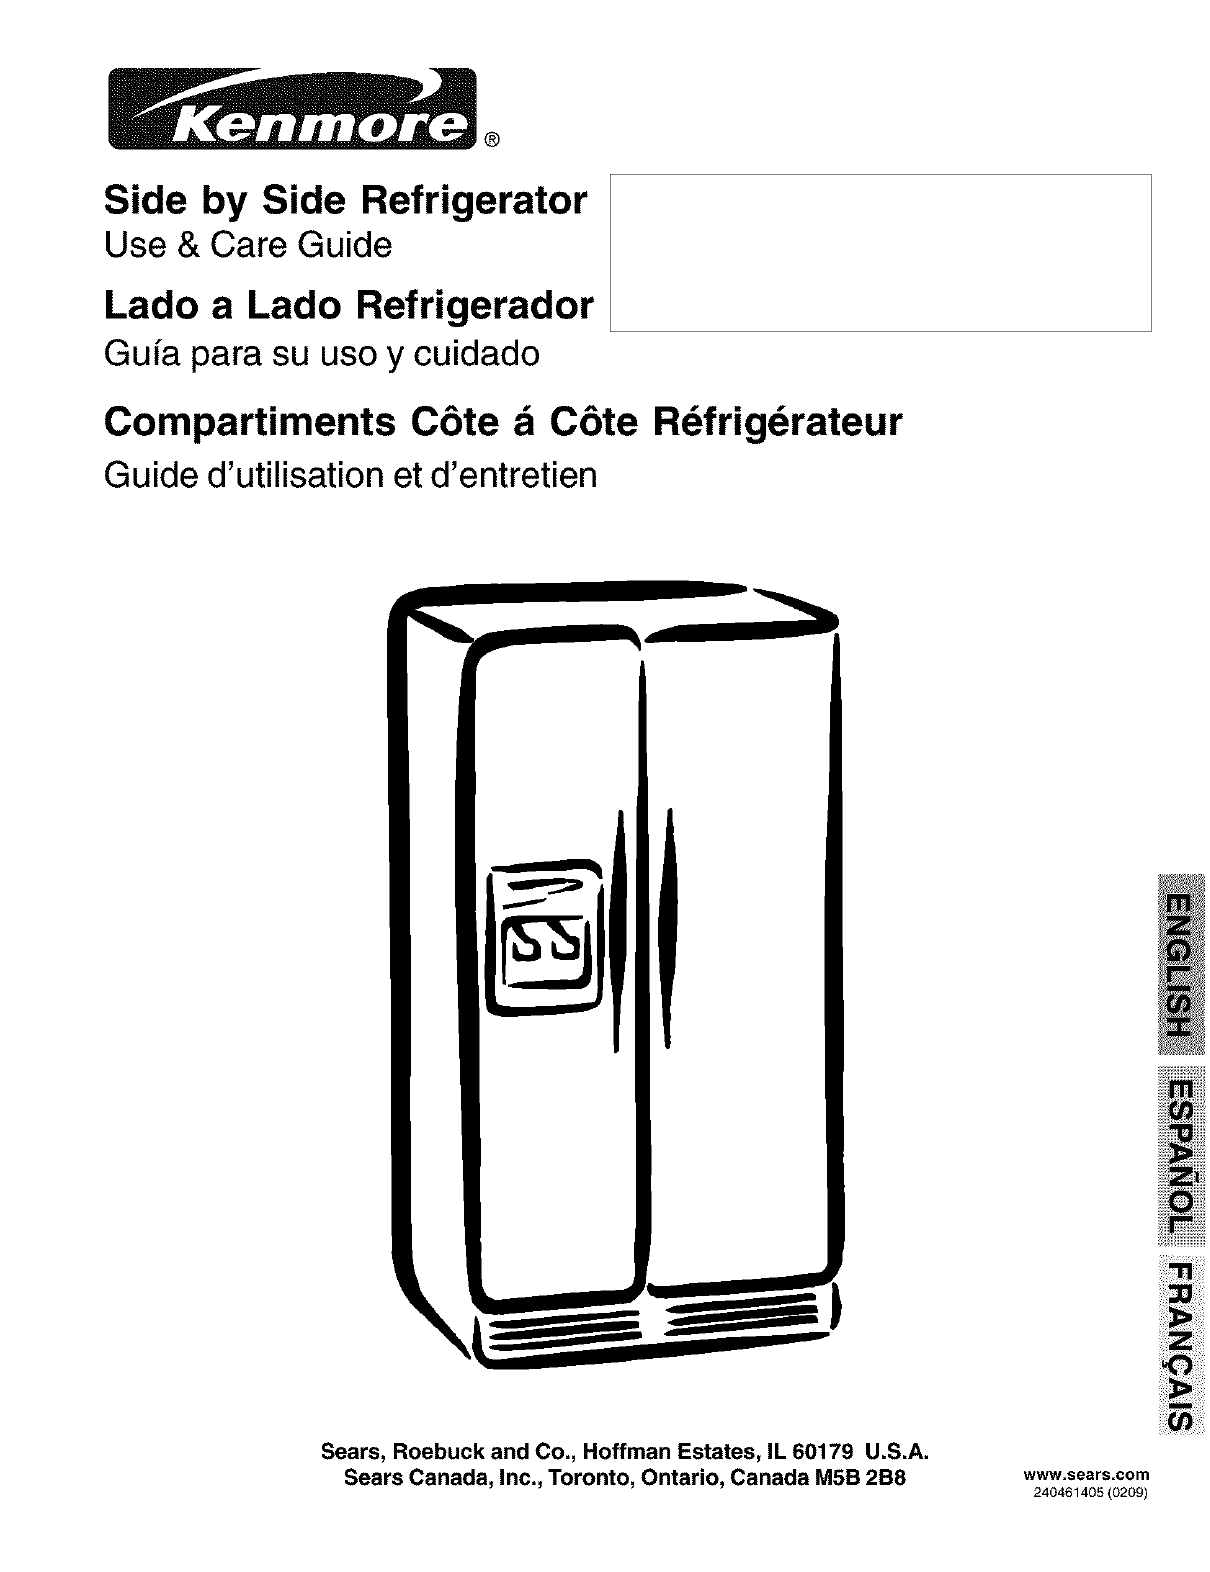 kenmore side by side refrigerator manual image refrigerator rh nabateans org Kenmore Refrigerator Owner's Manual Kenmore Refrigerator Owner's Manual